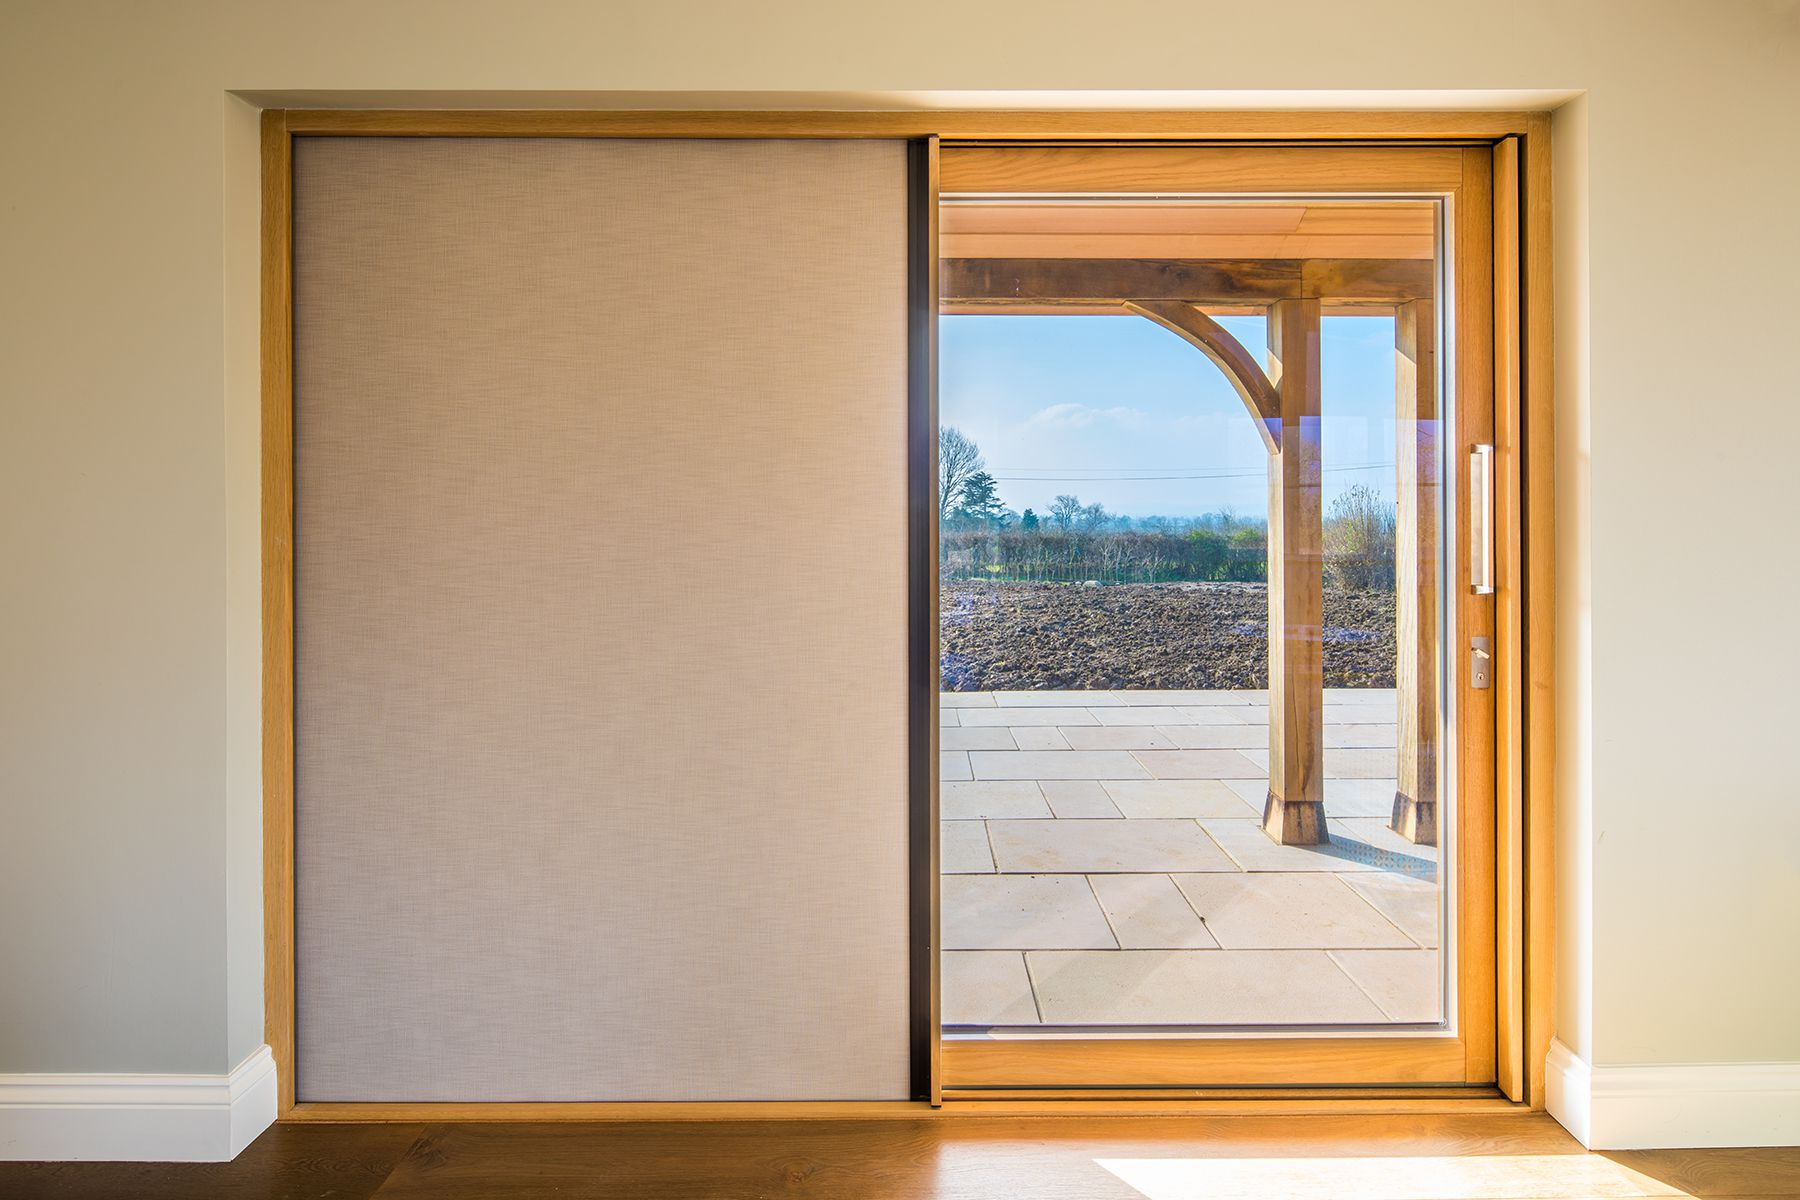 centor sliding door oak inside, aluminium outside. With black outblind